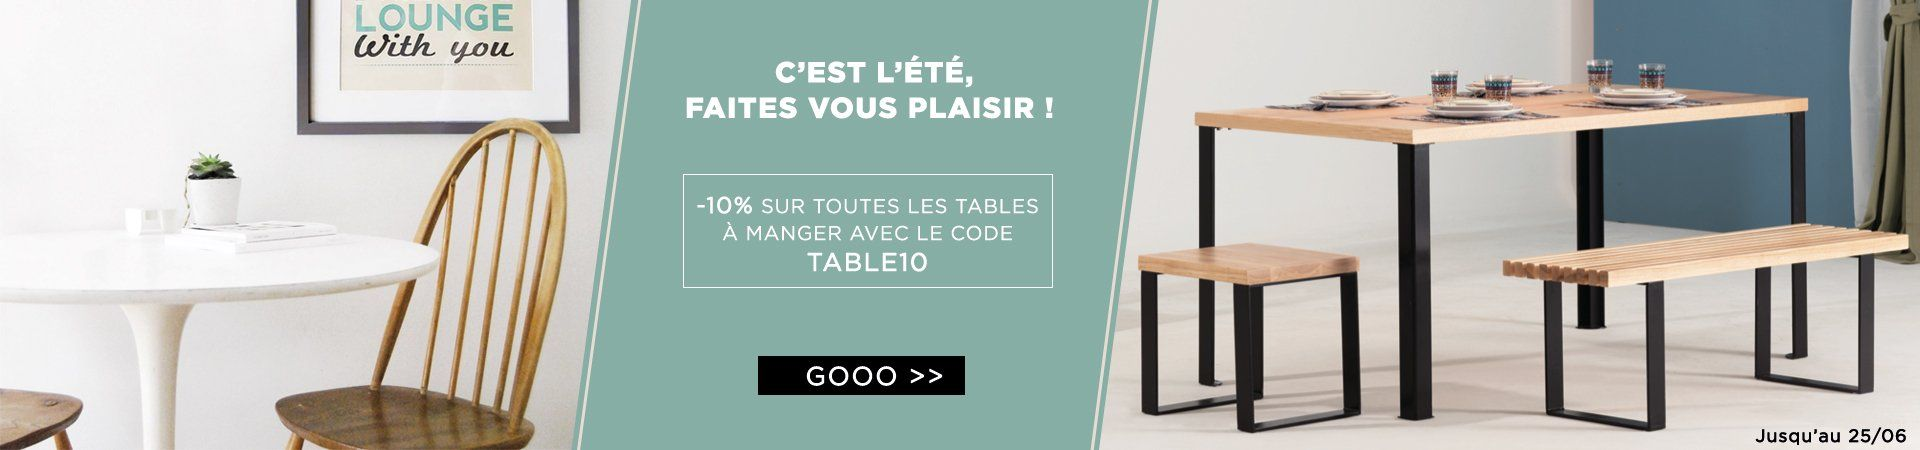 Remise 10% table